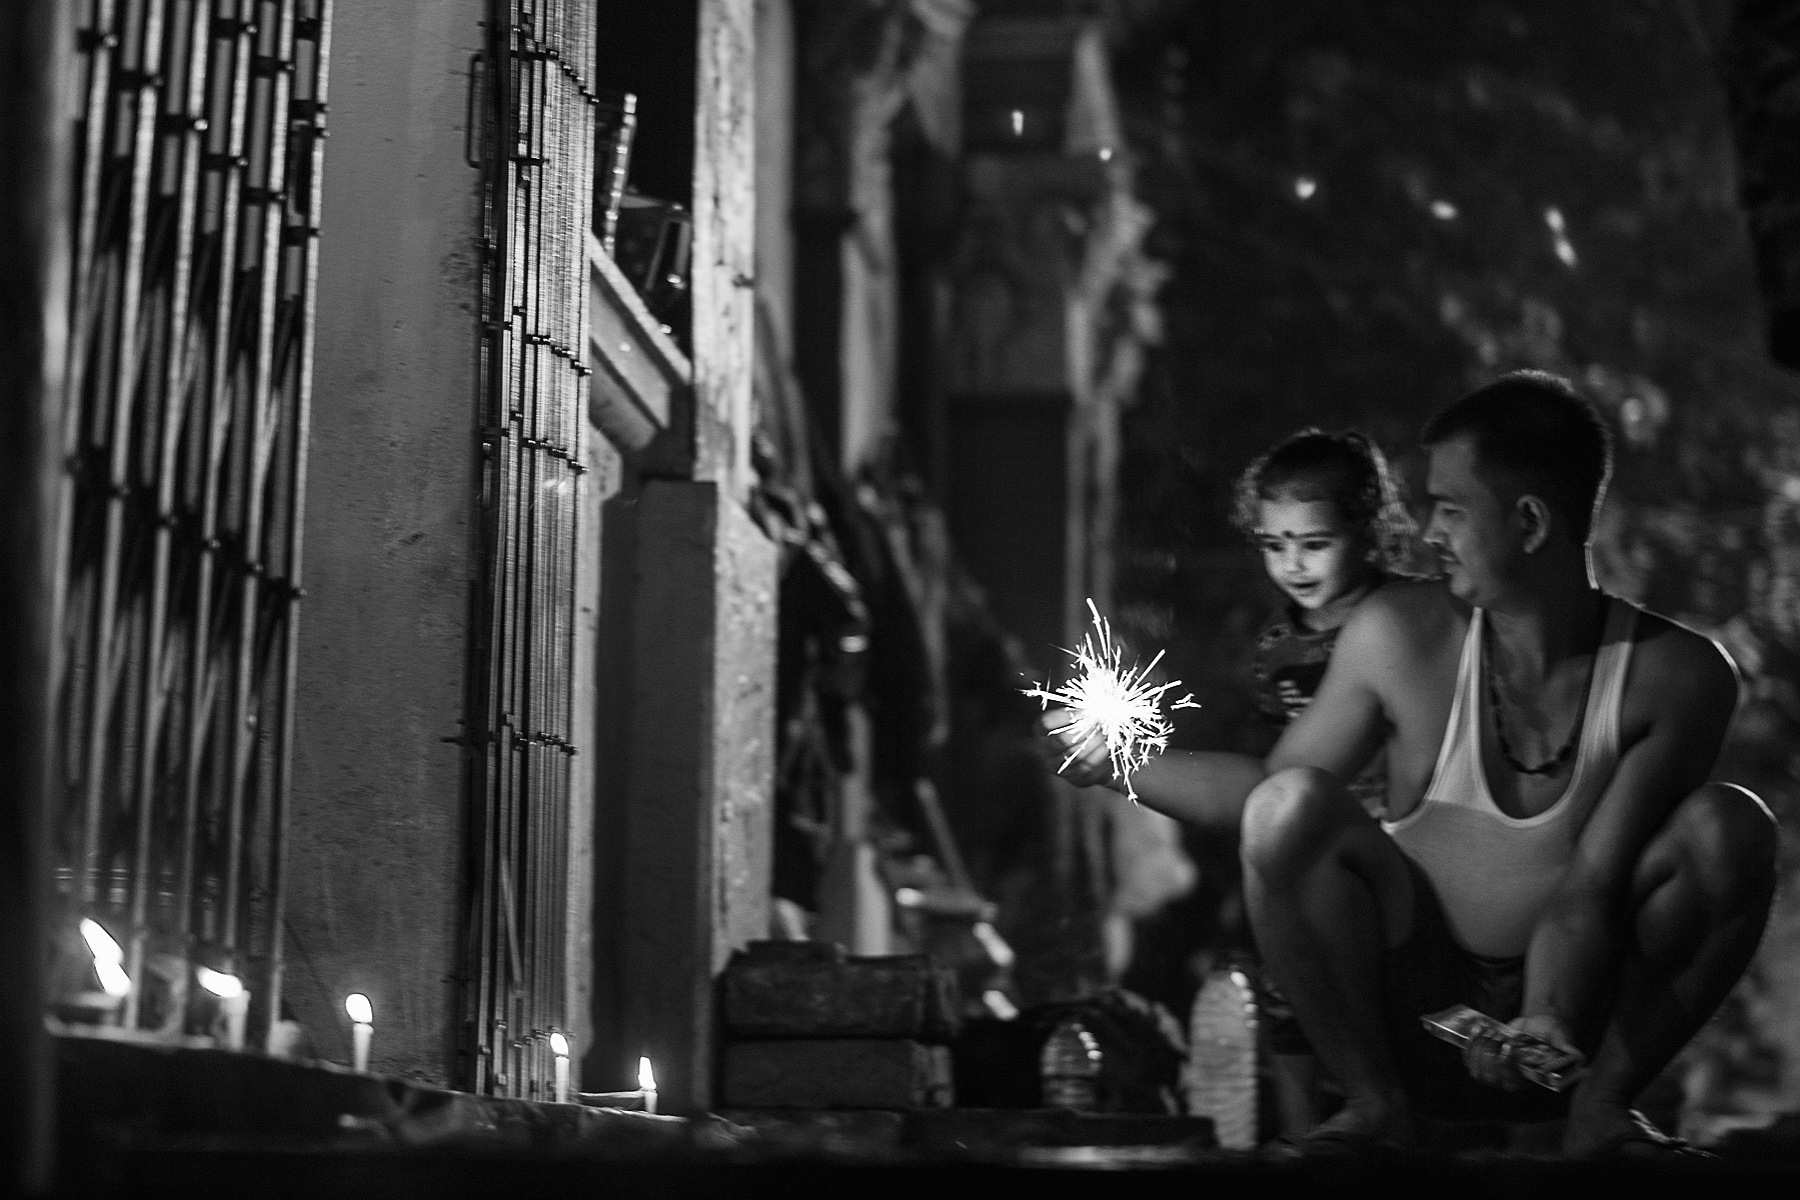 Hello, I am Swapan Dey from Kolkata. During dewali I took the picture a man enjoing his baby's expression with sparkling light.  Regards,  Swapan Dey  Email : dey072215@gmail.com Mobile no : 9830694610